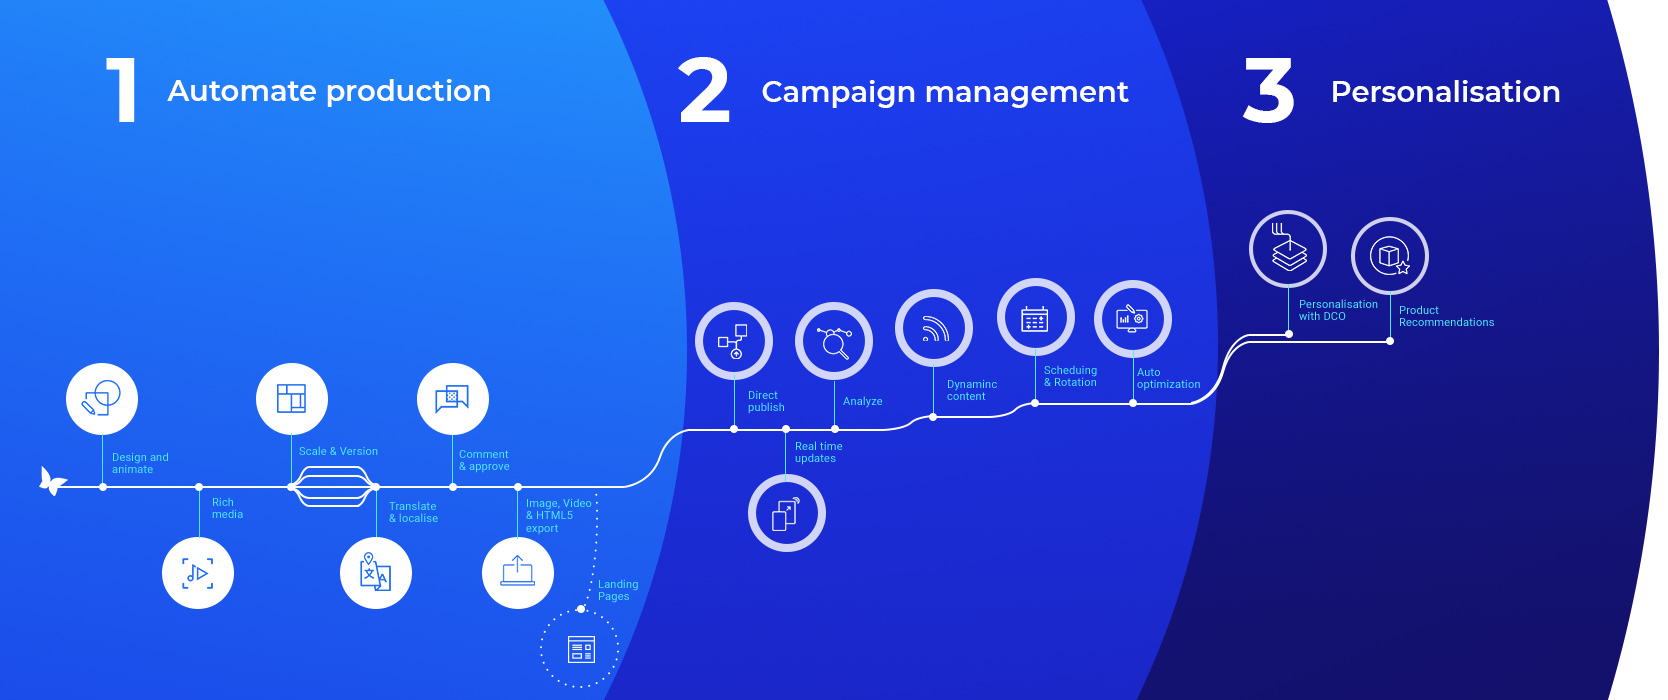 Bannerflow platform supports every stage of the campaign lifecycle, from ad creation and campaign management, to performance optimisation and personalisation